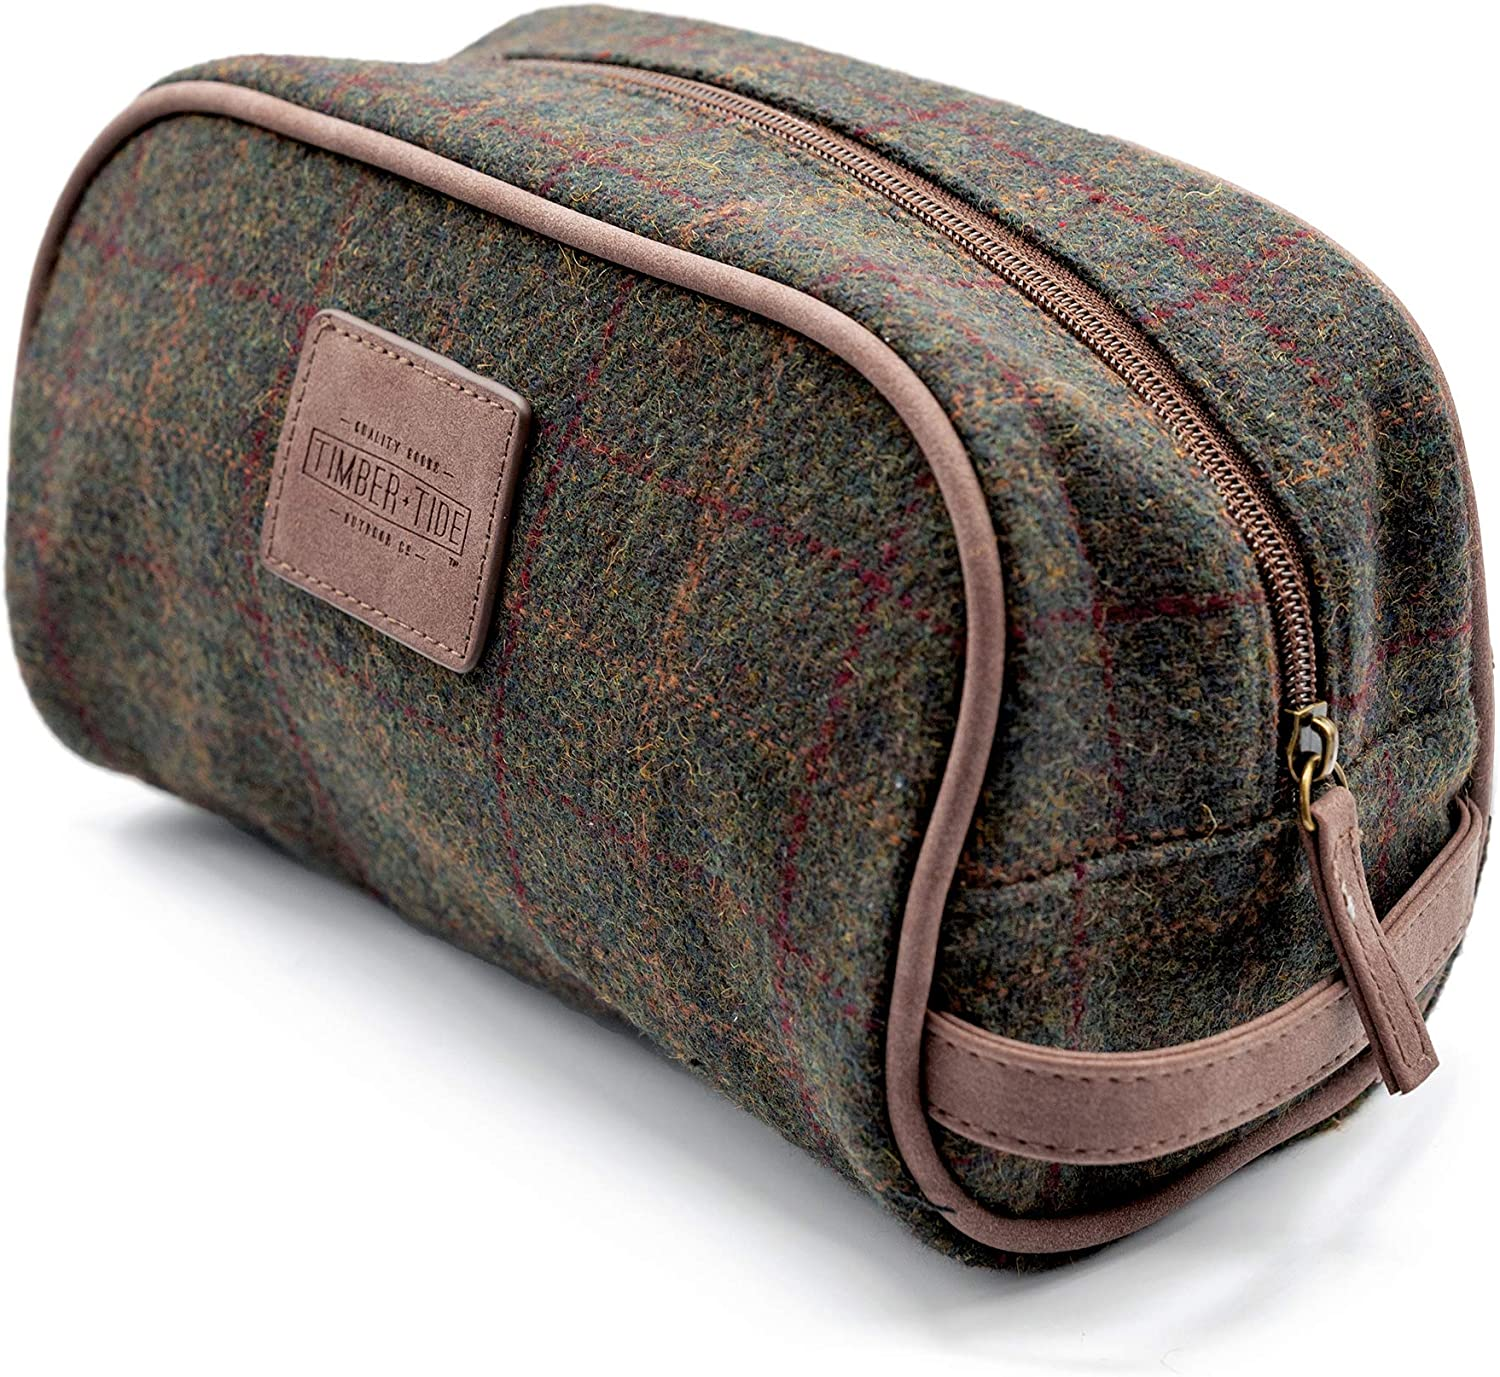 Vintage Free shipping Special sale item Plaid Men's Toiletry Shaving Portable Canvas Trave Bag -